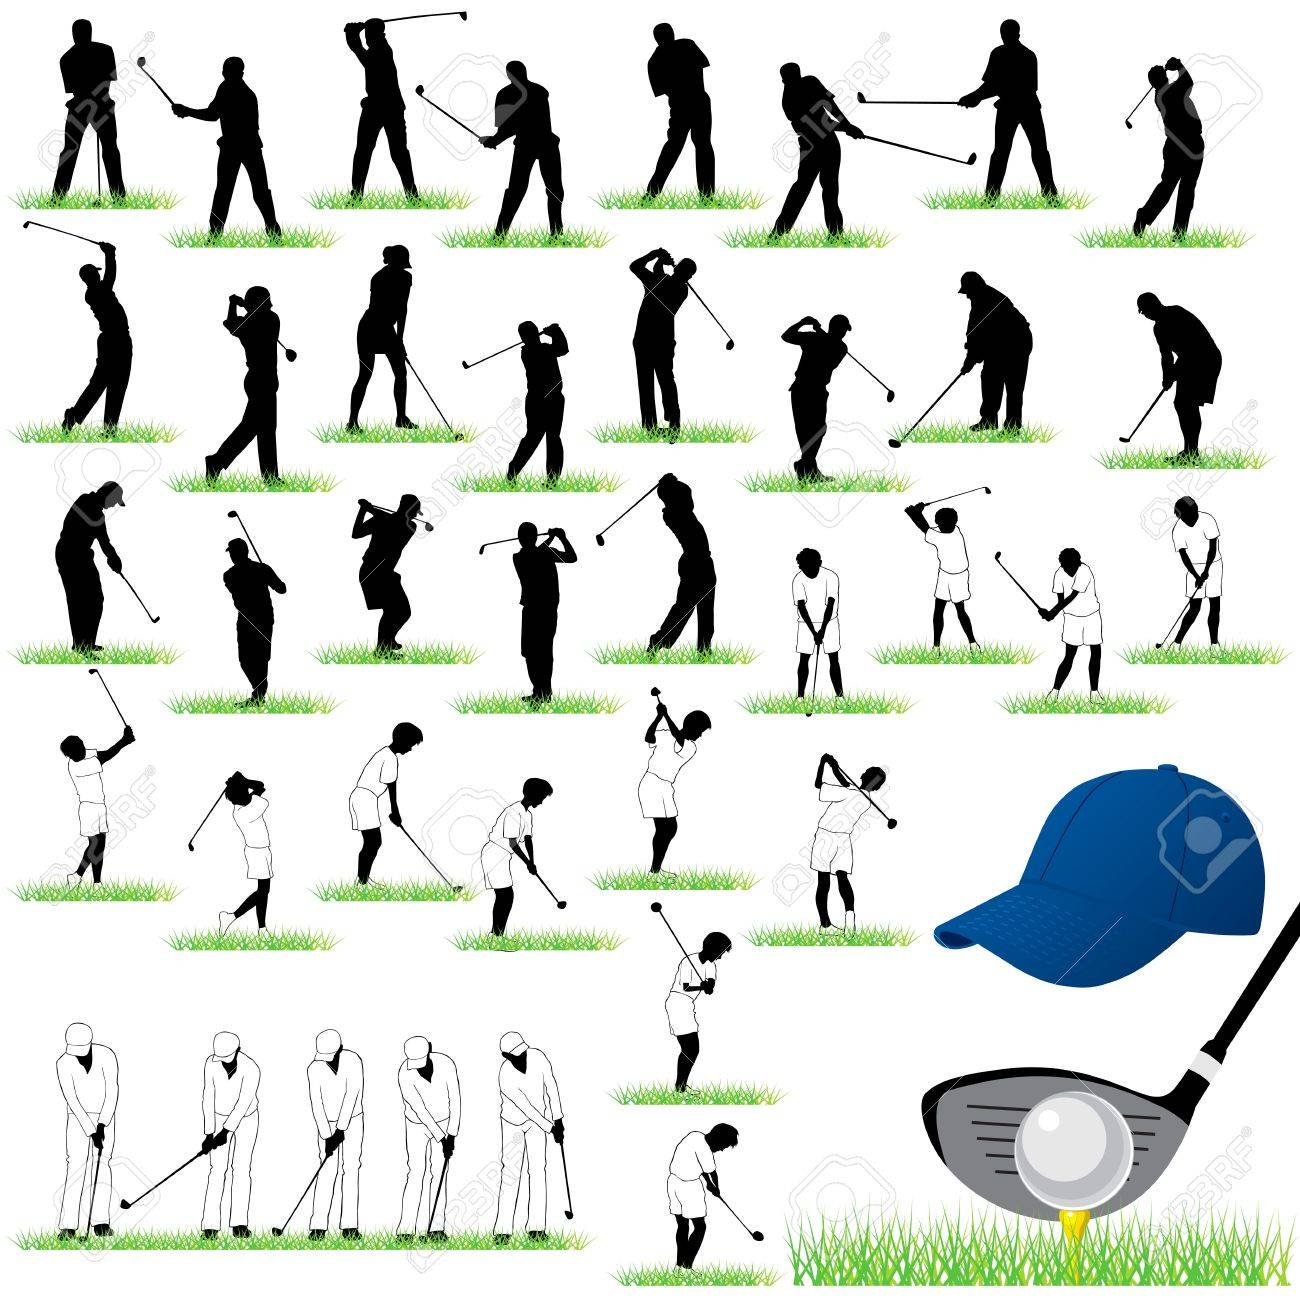 40 Detailed Golf Silhouettes Set Royalty Free Cliparts Vectors And